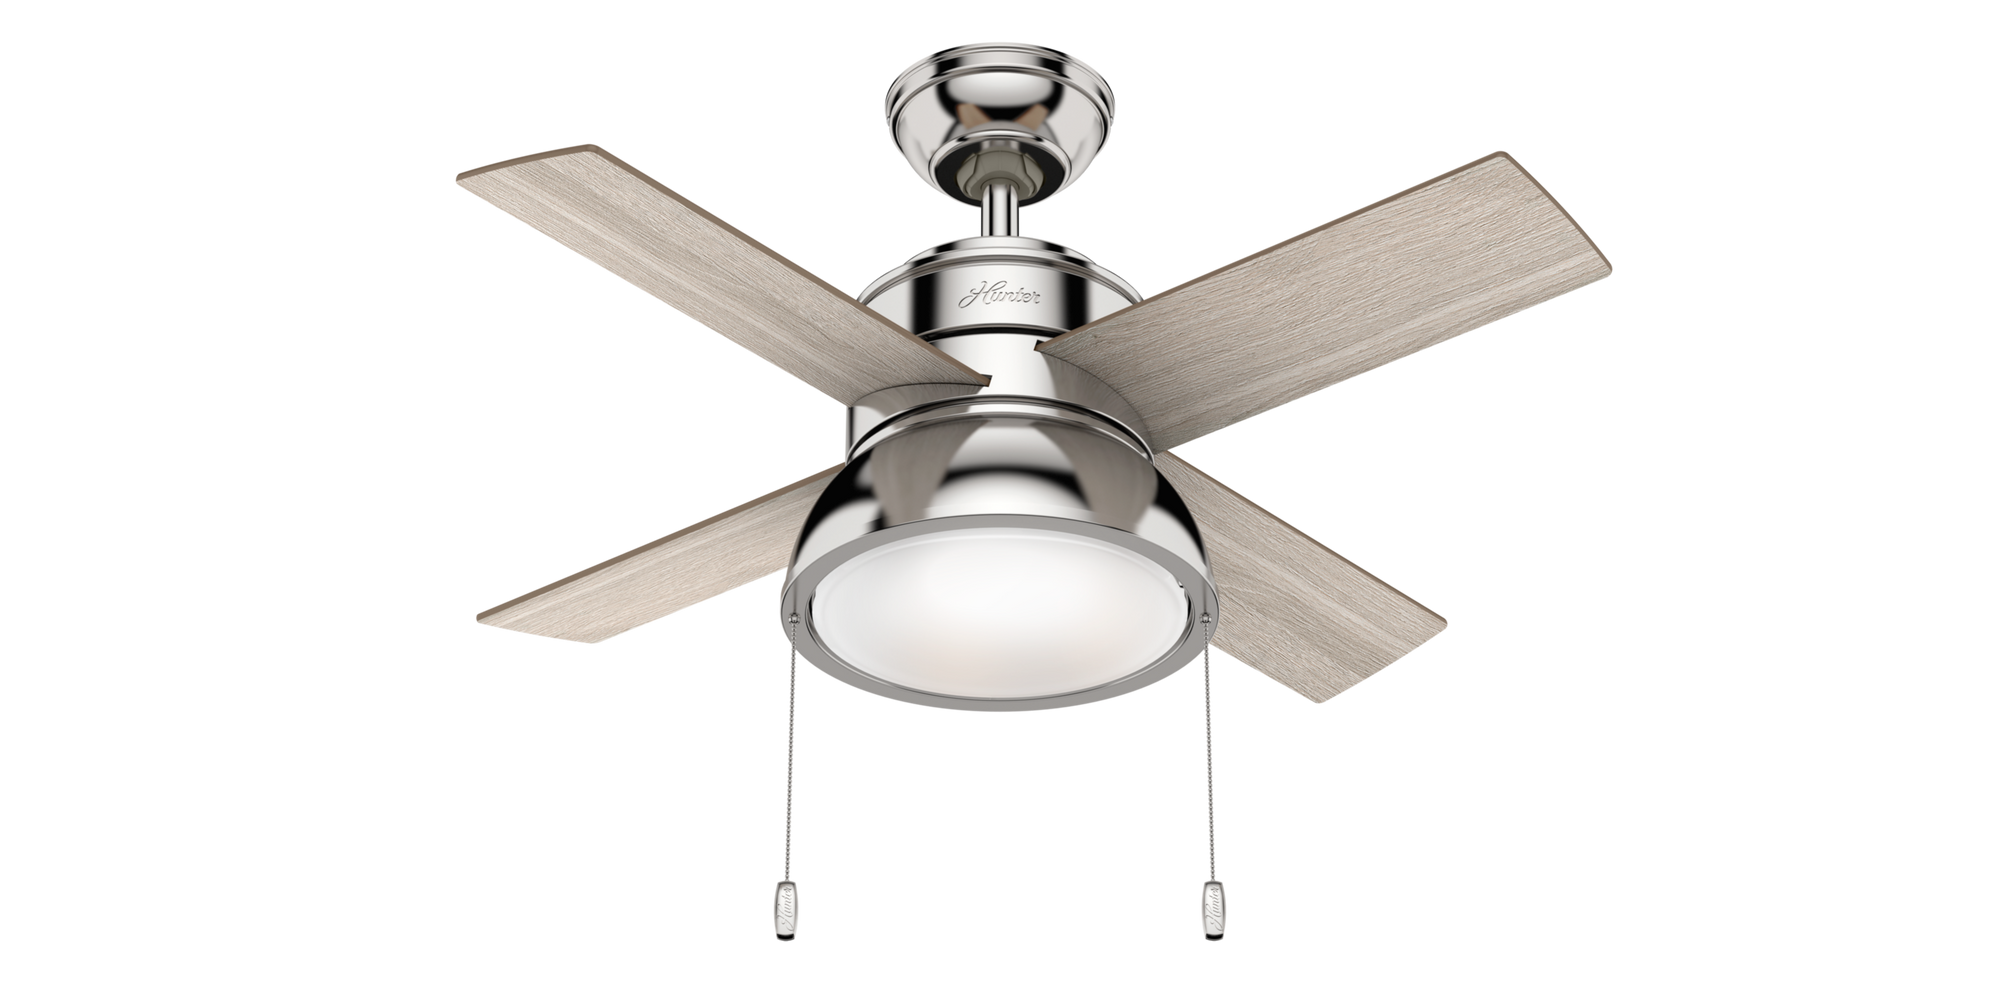 Hunter Indoor Loki Ceiling Fan with LED LightJD inch, Brushed Nickel/Chrome, 59386